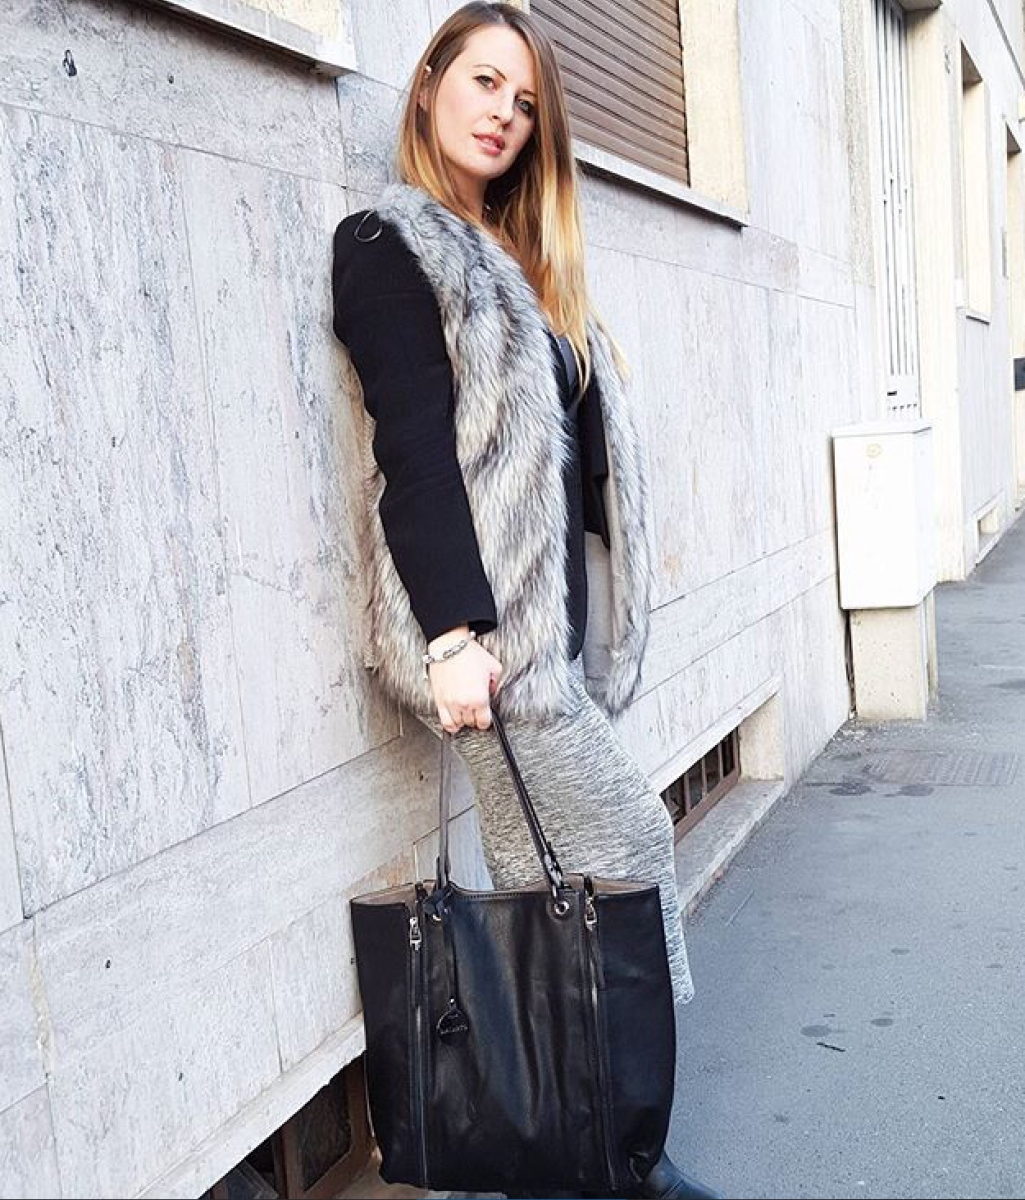 Autumn-ootd by Diana&co firenze